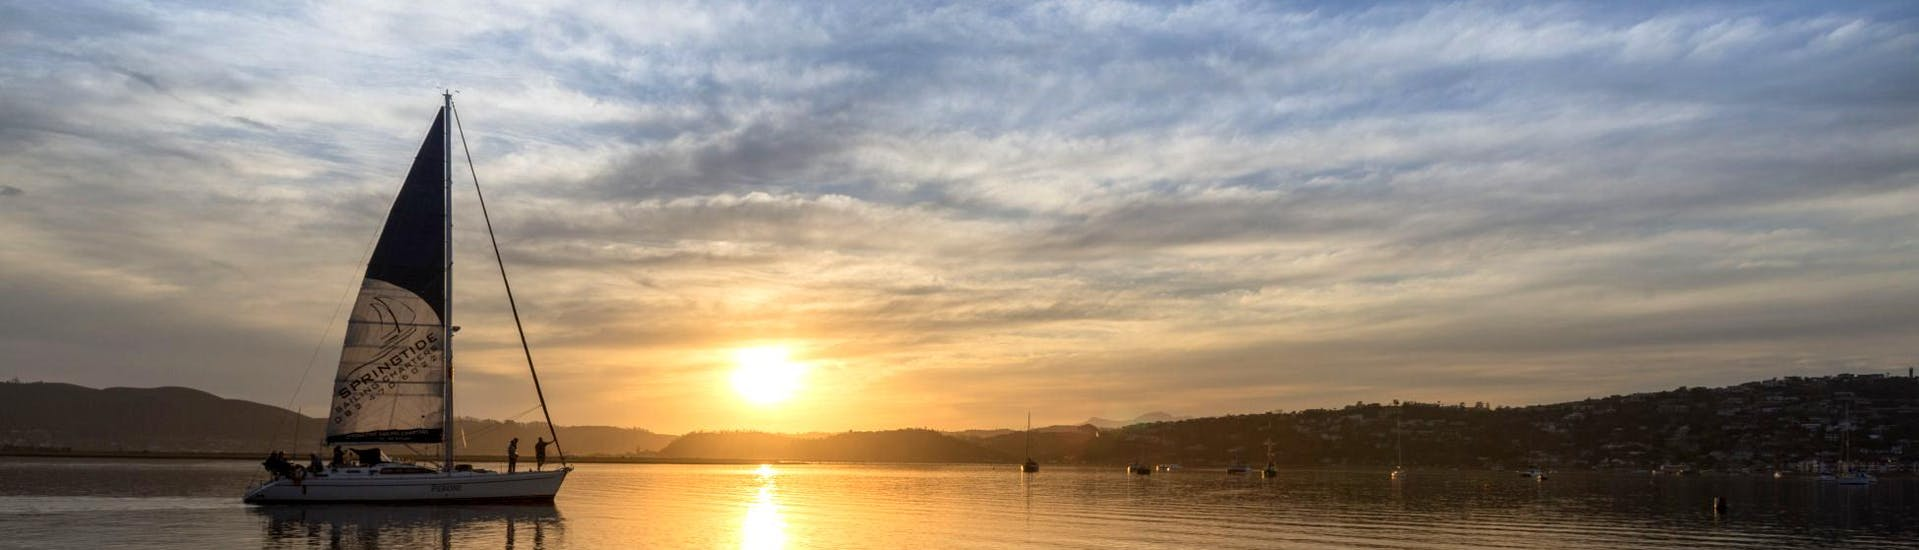 During the Sunset Sailing Tour from Knysna with Finger Dinner organised by Spring Tide Charters Garden Route, tourists are enjoying amazing views of the Knysna's scenery at sunset.